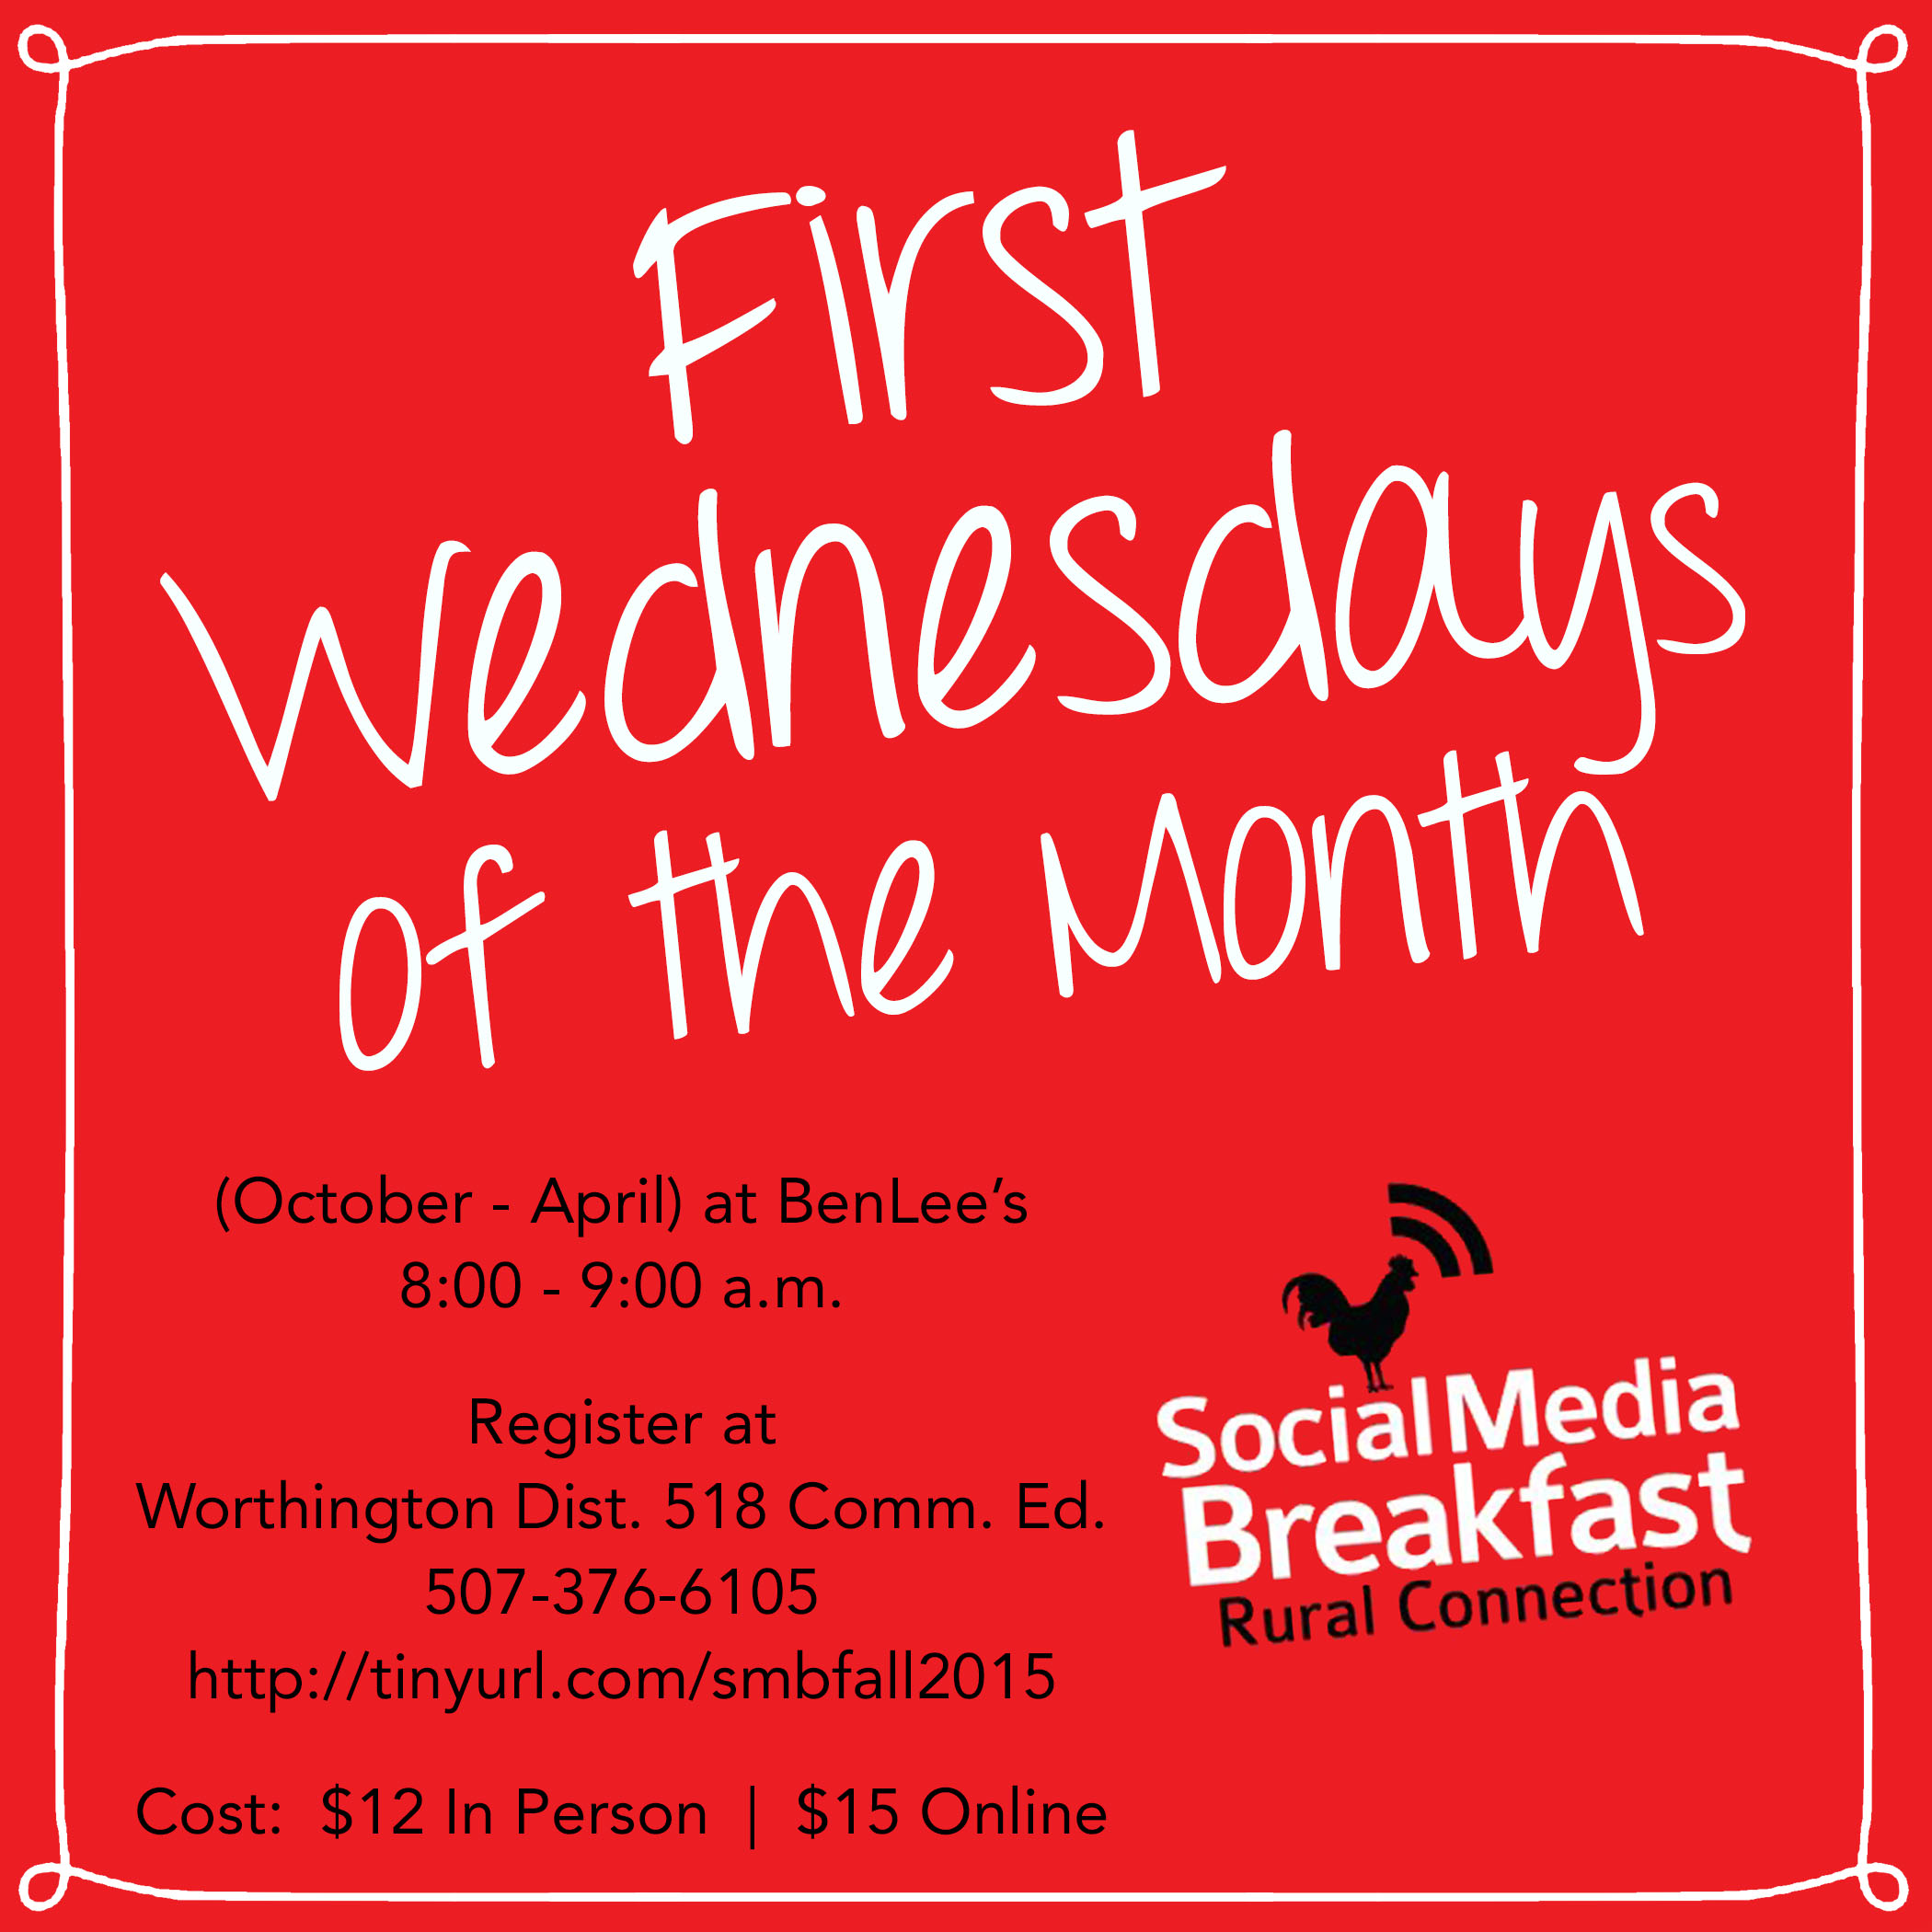 Social_Media_Breakfast_Flyer.jpg